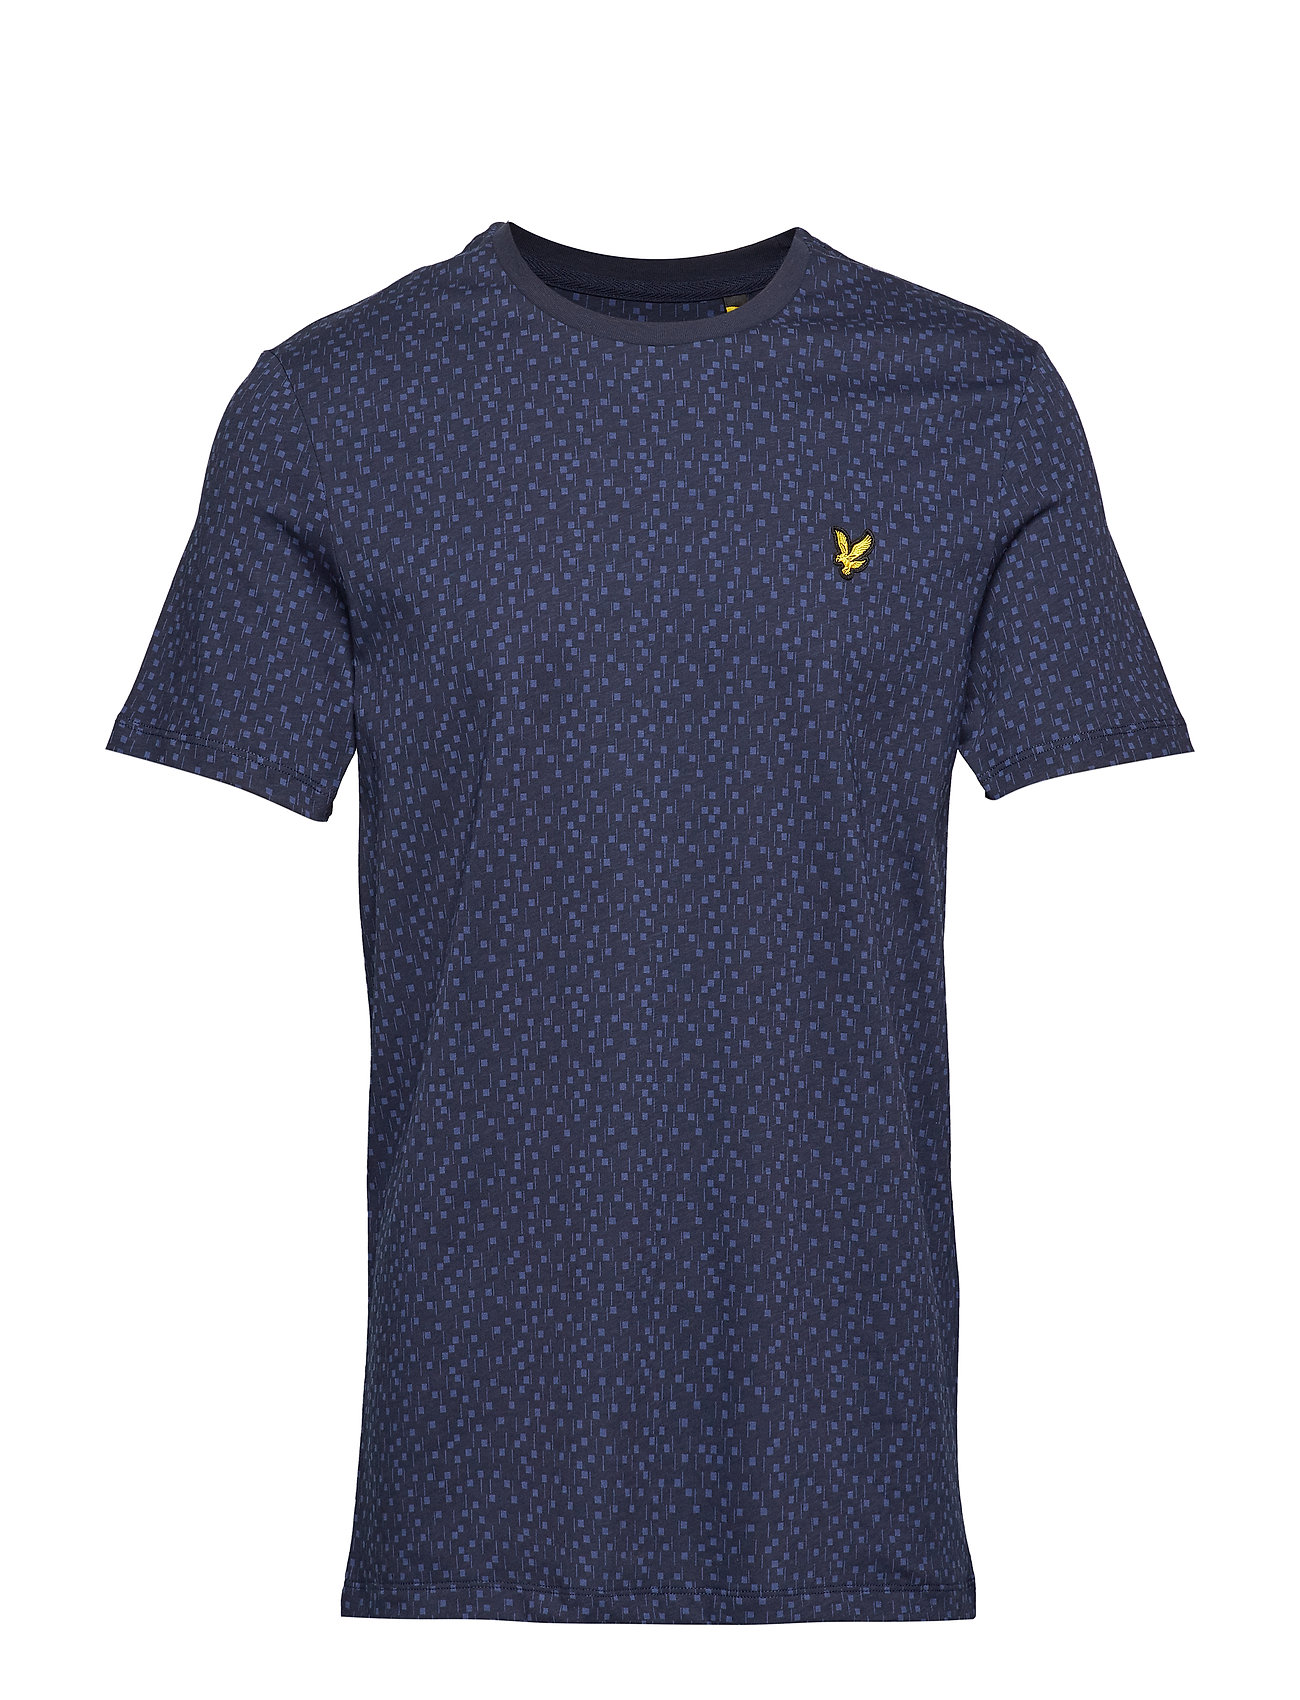 Lyle & Scott Print T-Shirt - NAVY MICRO TILE PRINT